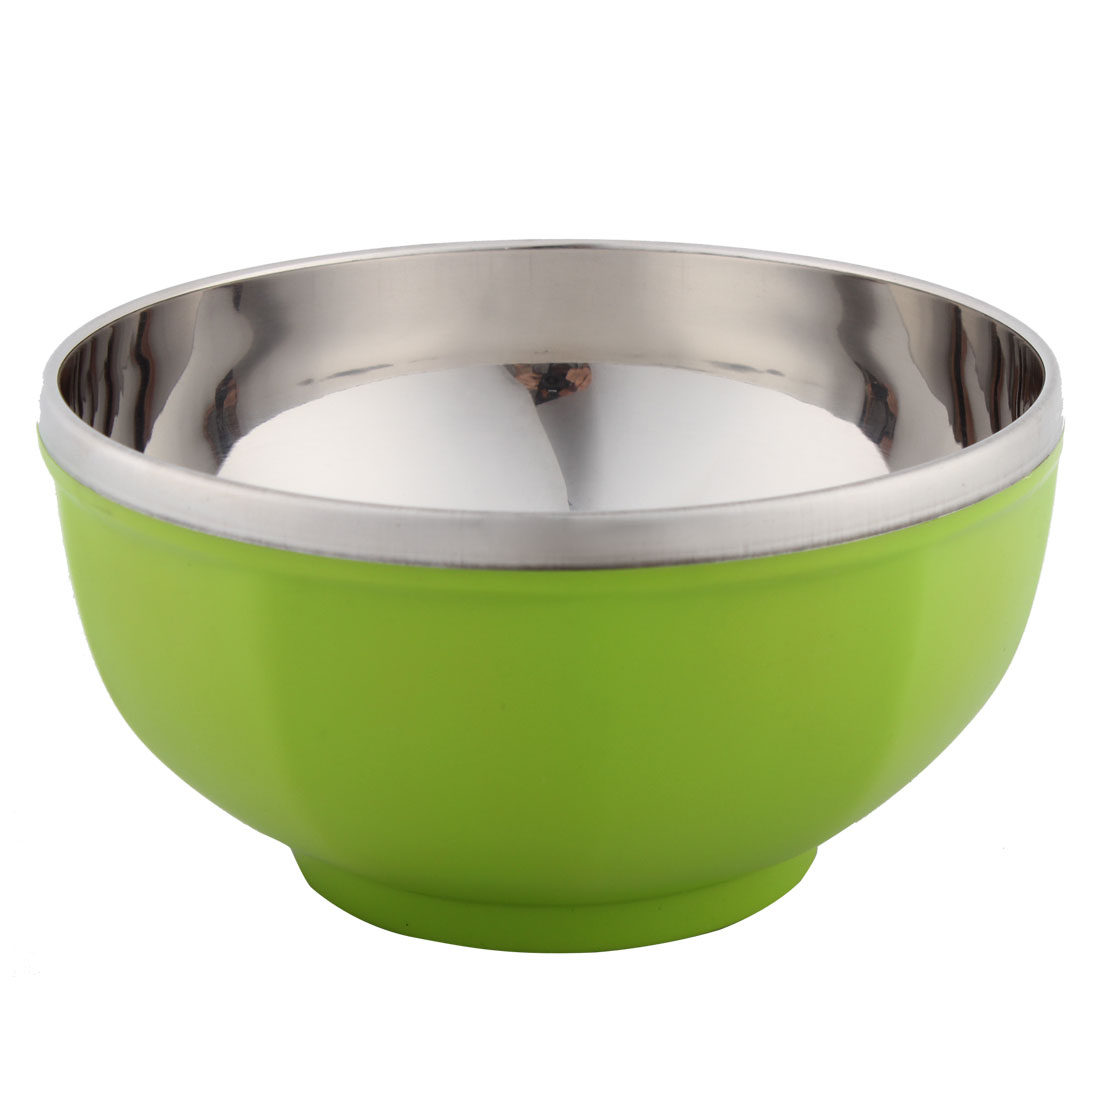 Home Kitchen Round Shaped Stainless Steel Dinner Rice Bowl Silver Tone 16.5cm Diameter